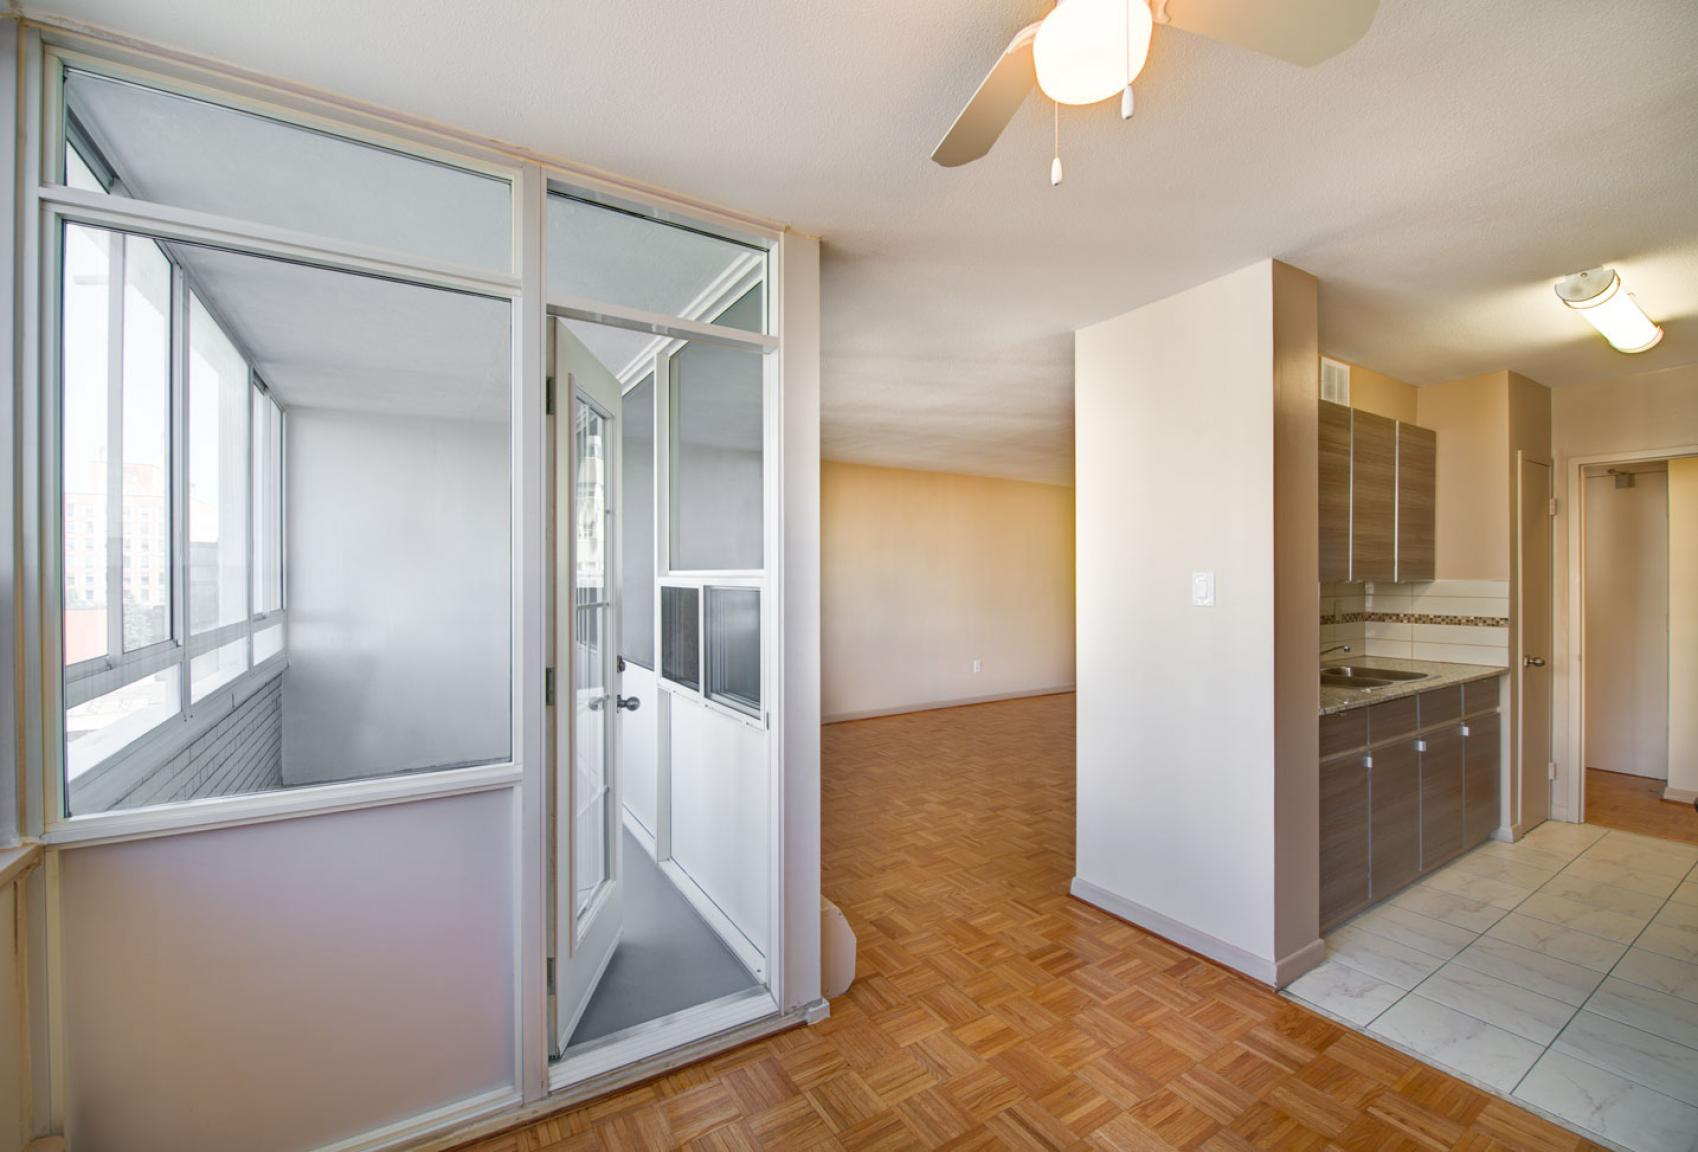 1 bedroom Apartments for rent in Toronto at Dunfield Tower - Photo 11 - RentersPages – L138879